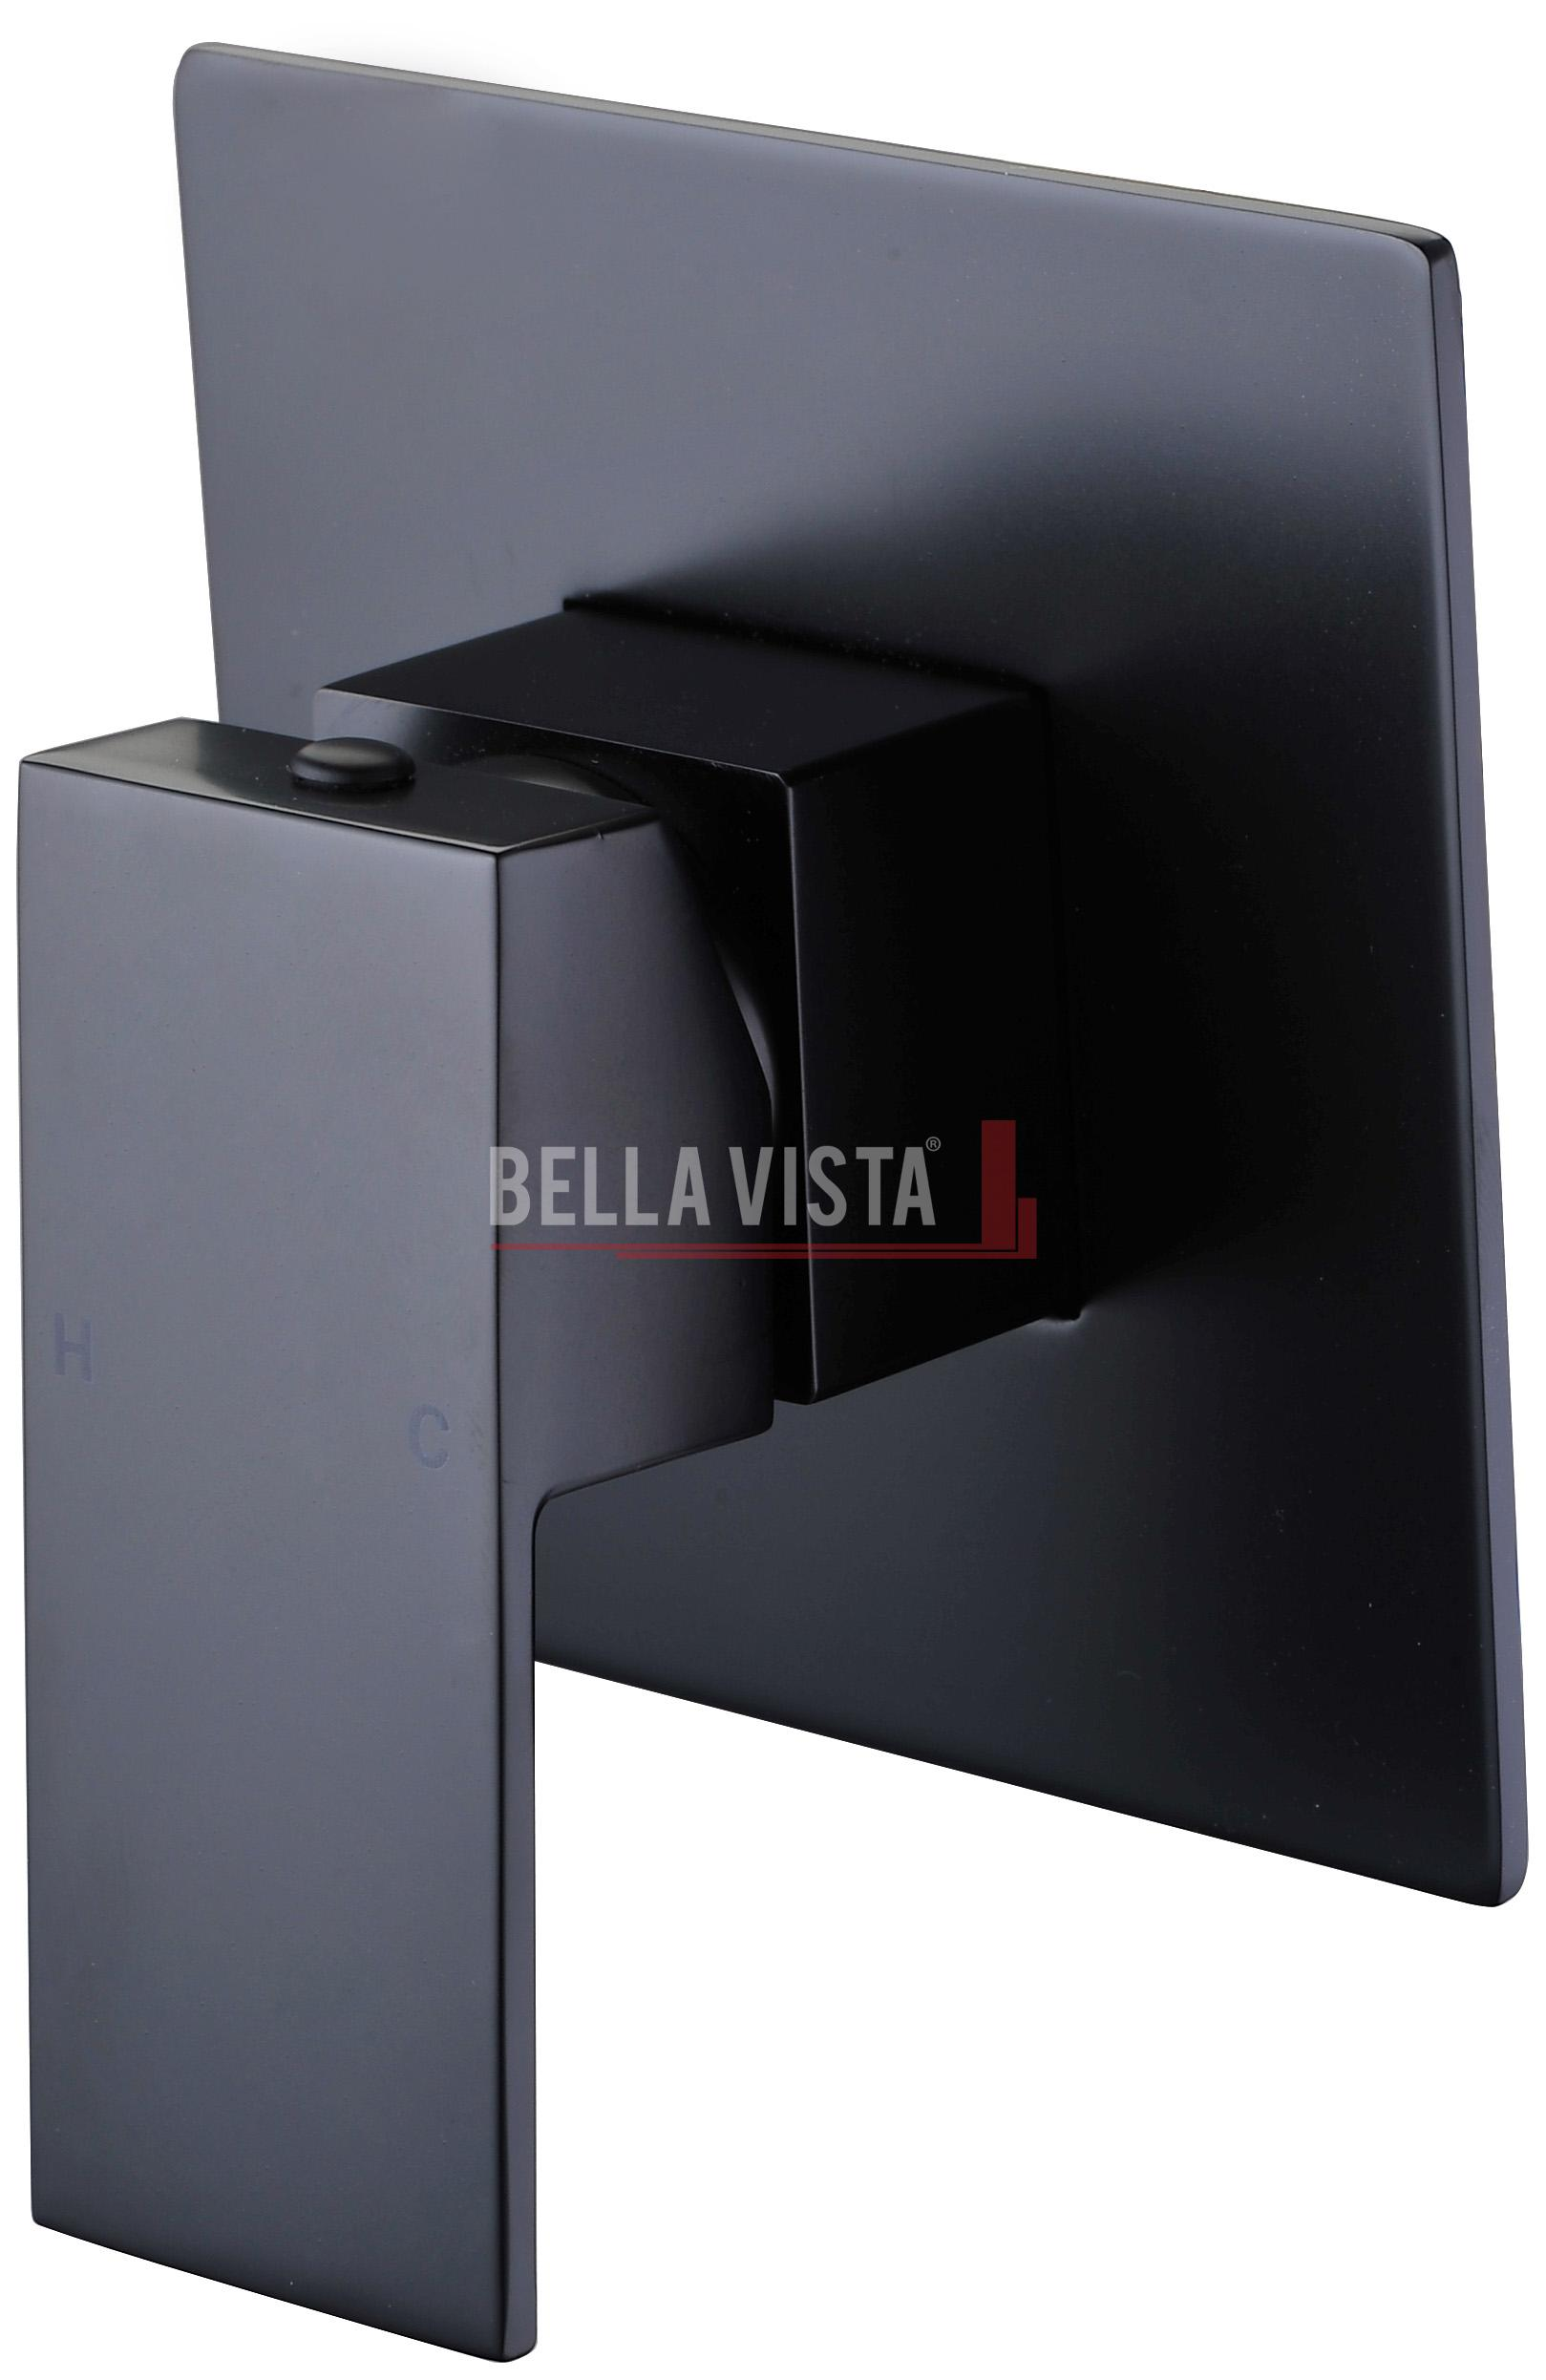 Deko Black Square Shower / Bath Mixer